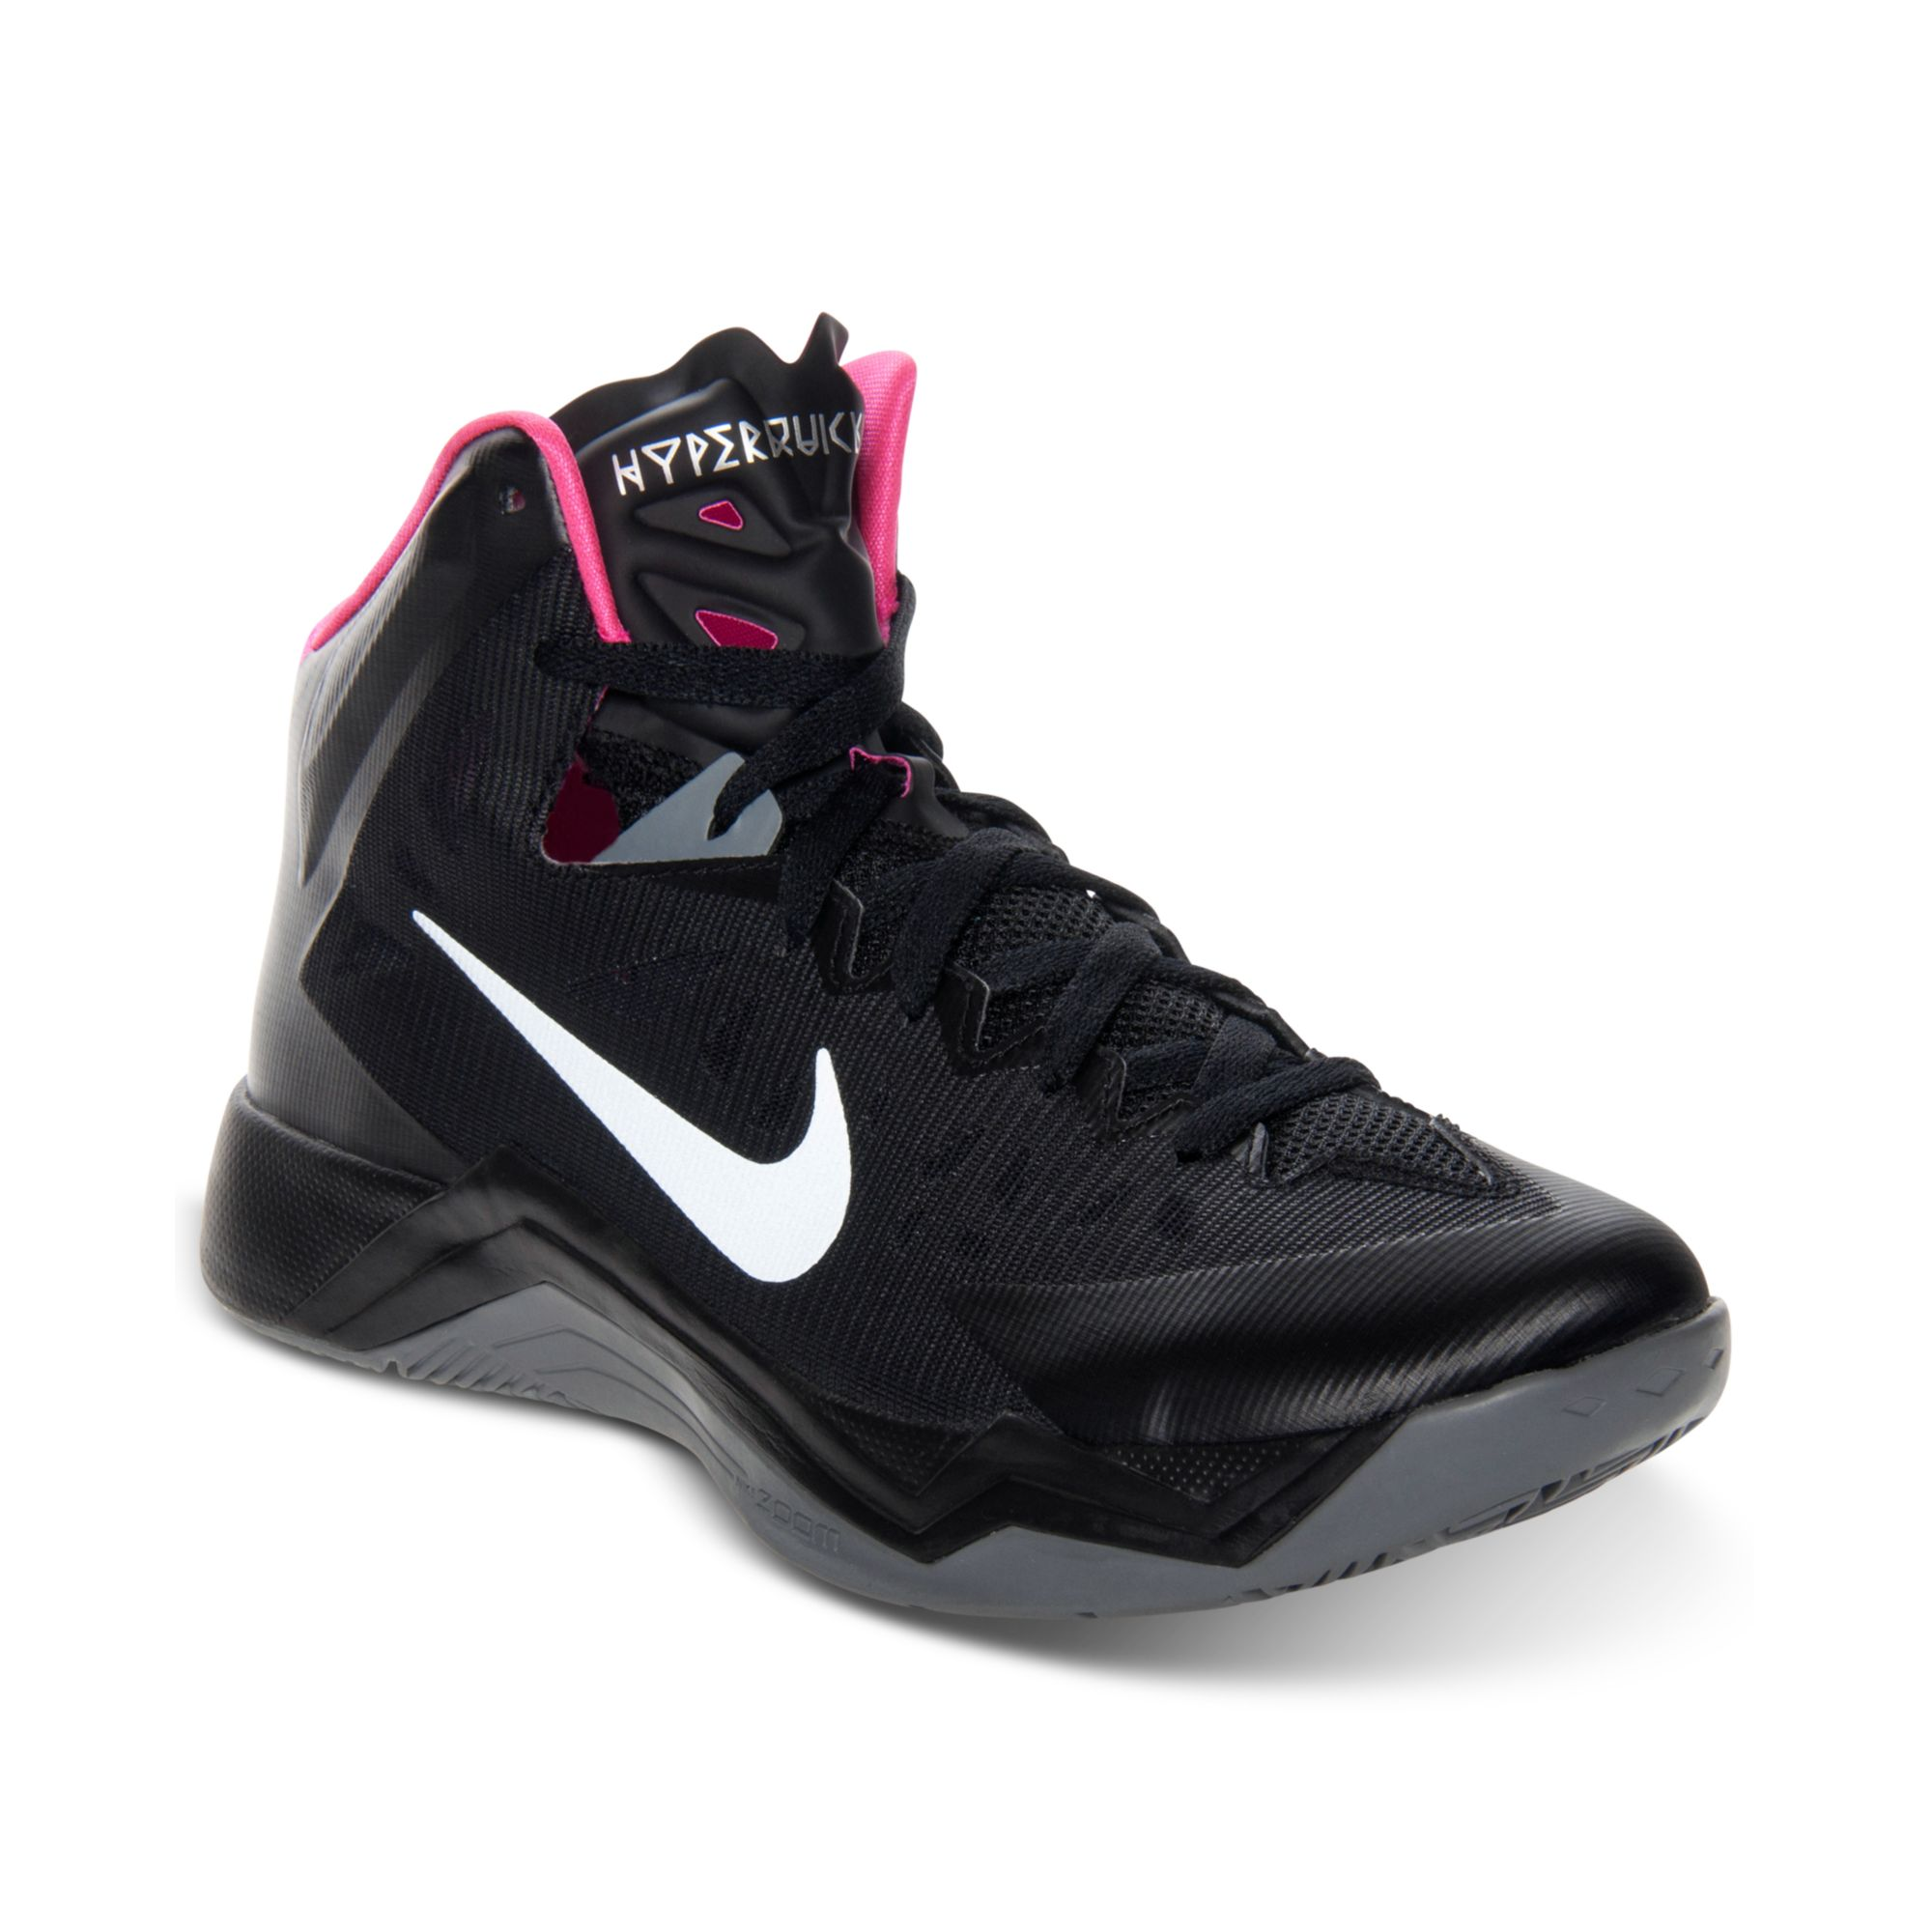 8c188a753cce nike-blackmetallic-silverpin-mens-hyper-quickness-basketball-sneakers -from-finish-line-product-1-15395546-293976037.jpeg